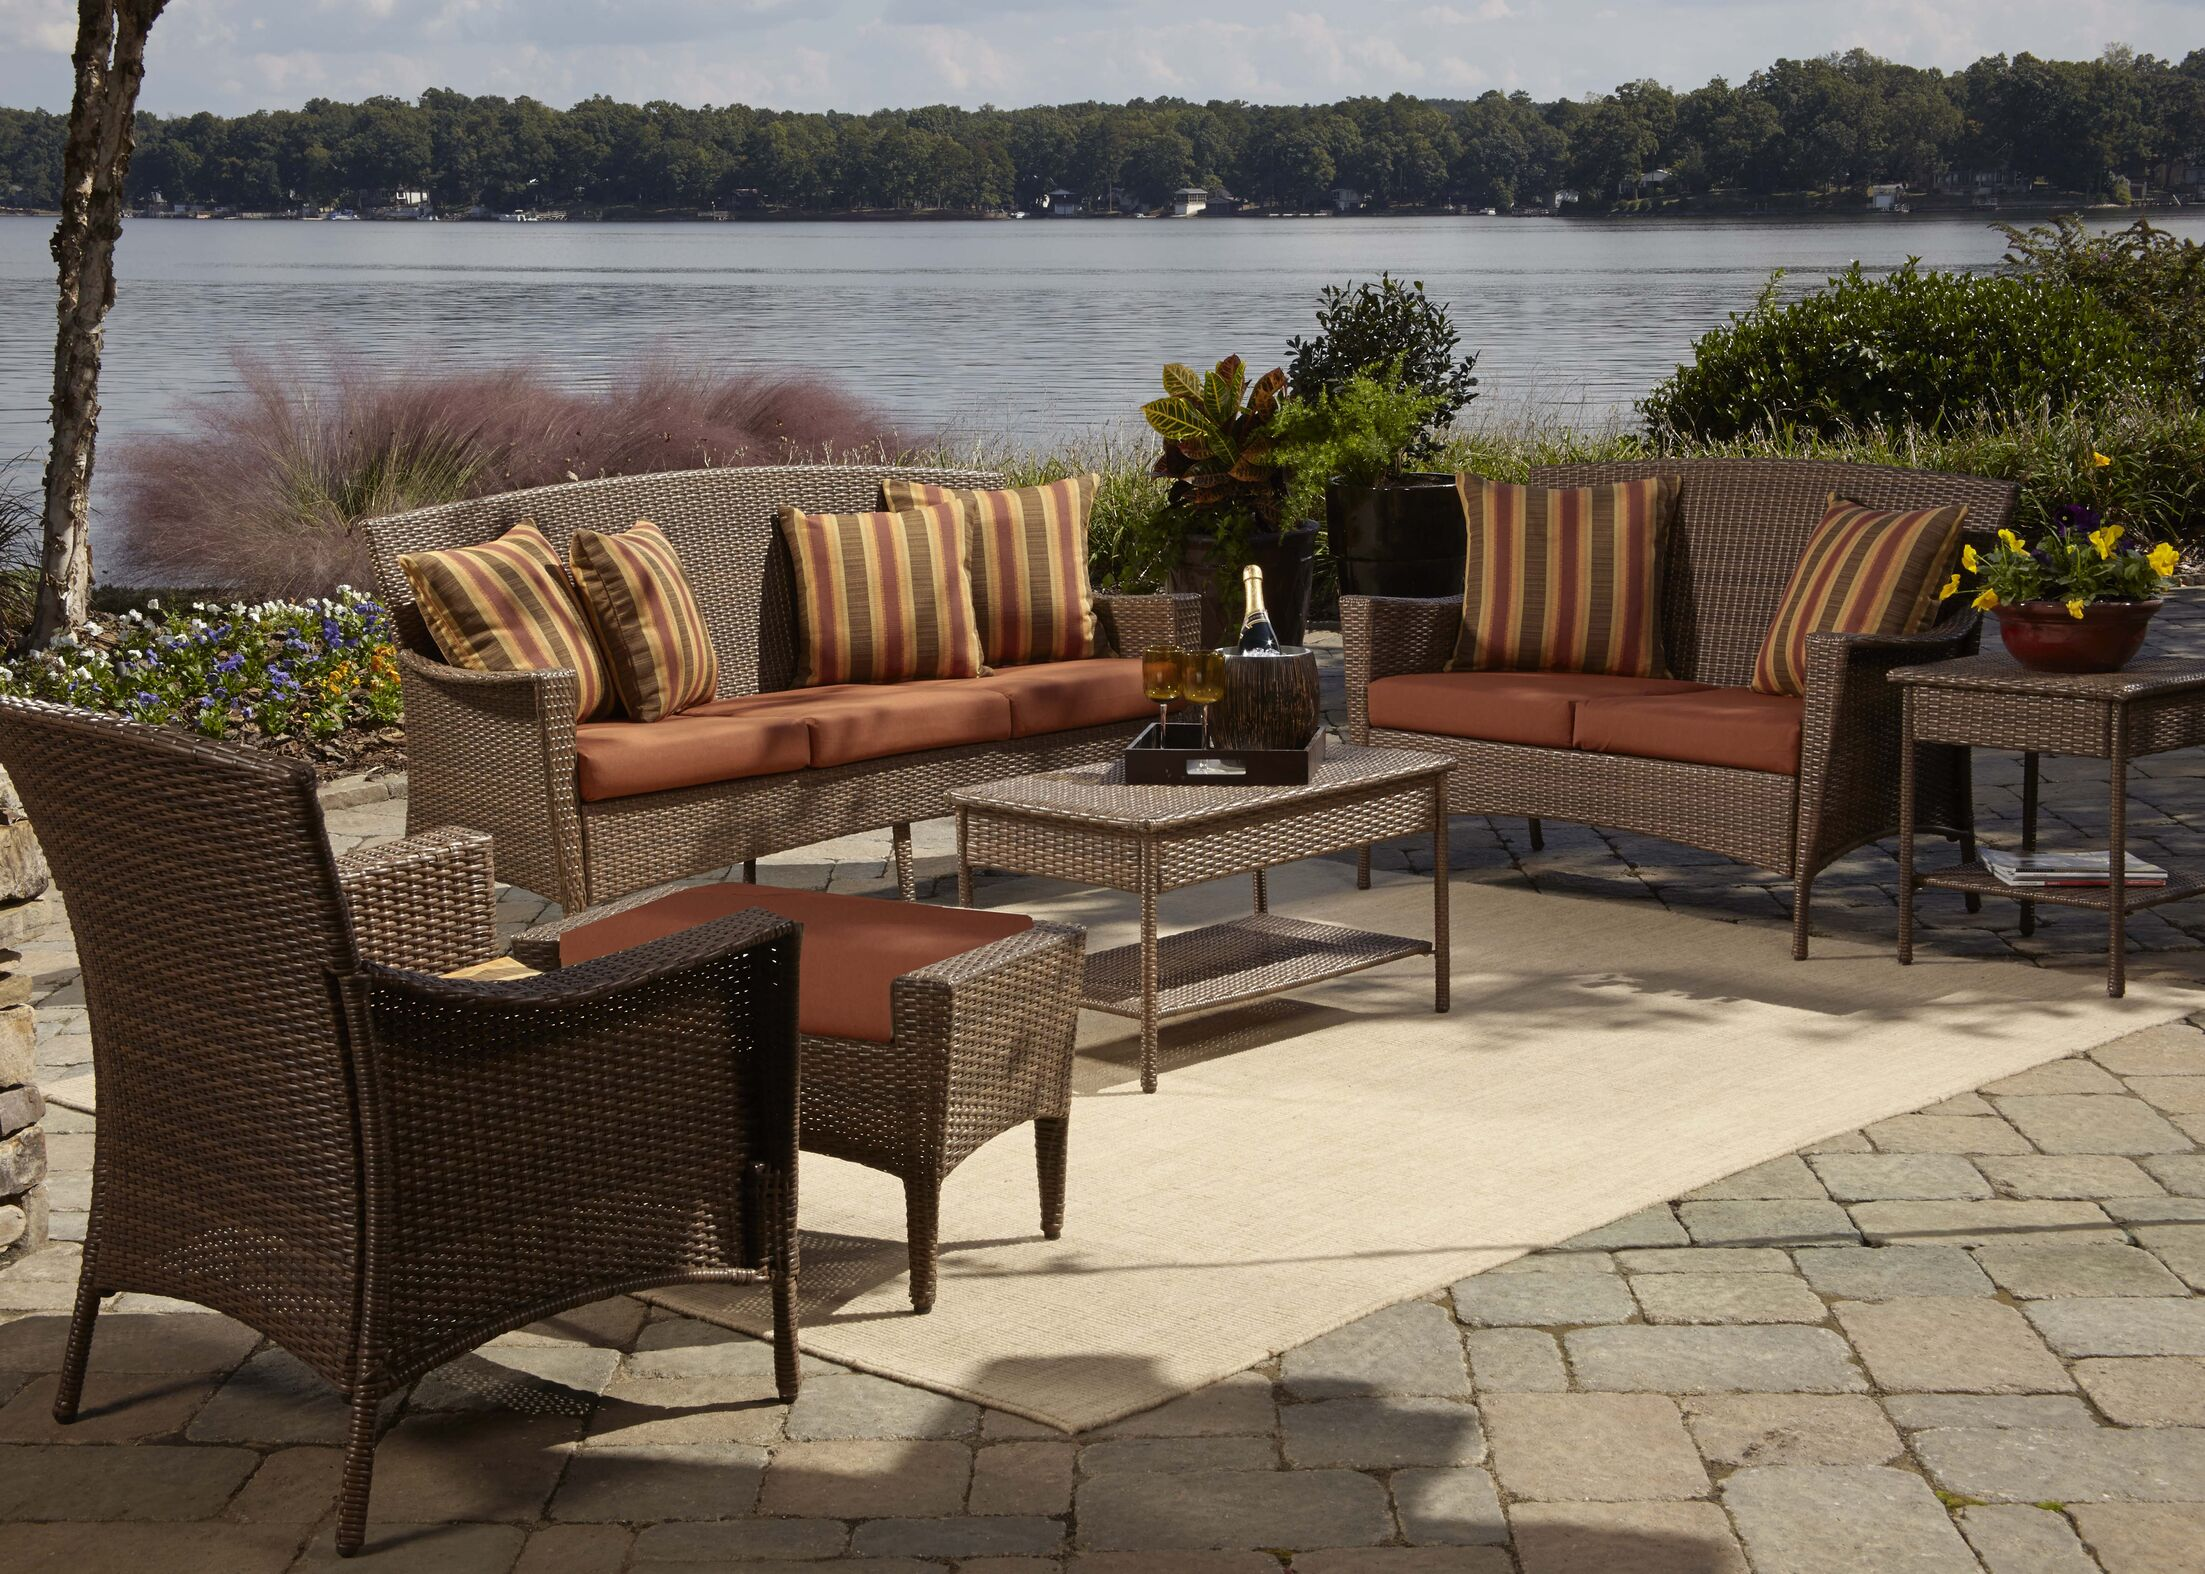 Key Biscayne 5 Piece Sofa Seating Group with Cushions Fabric: Dimone Palm